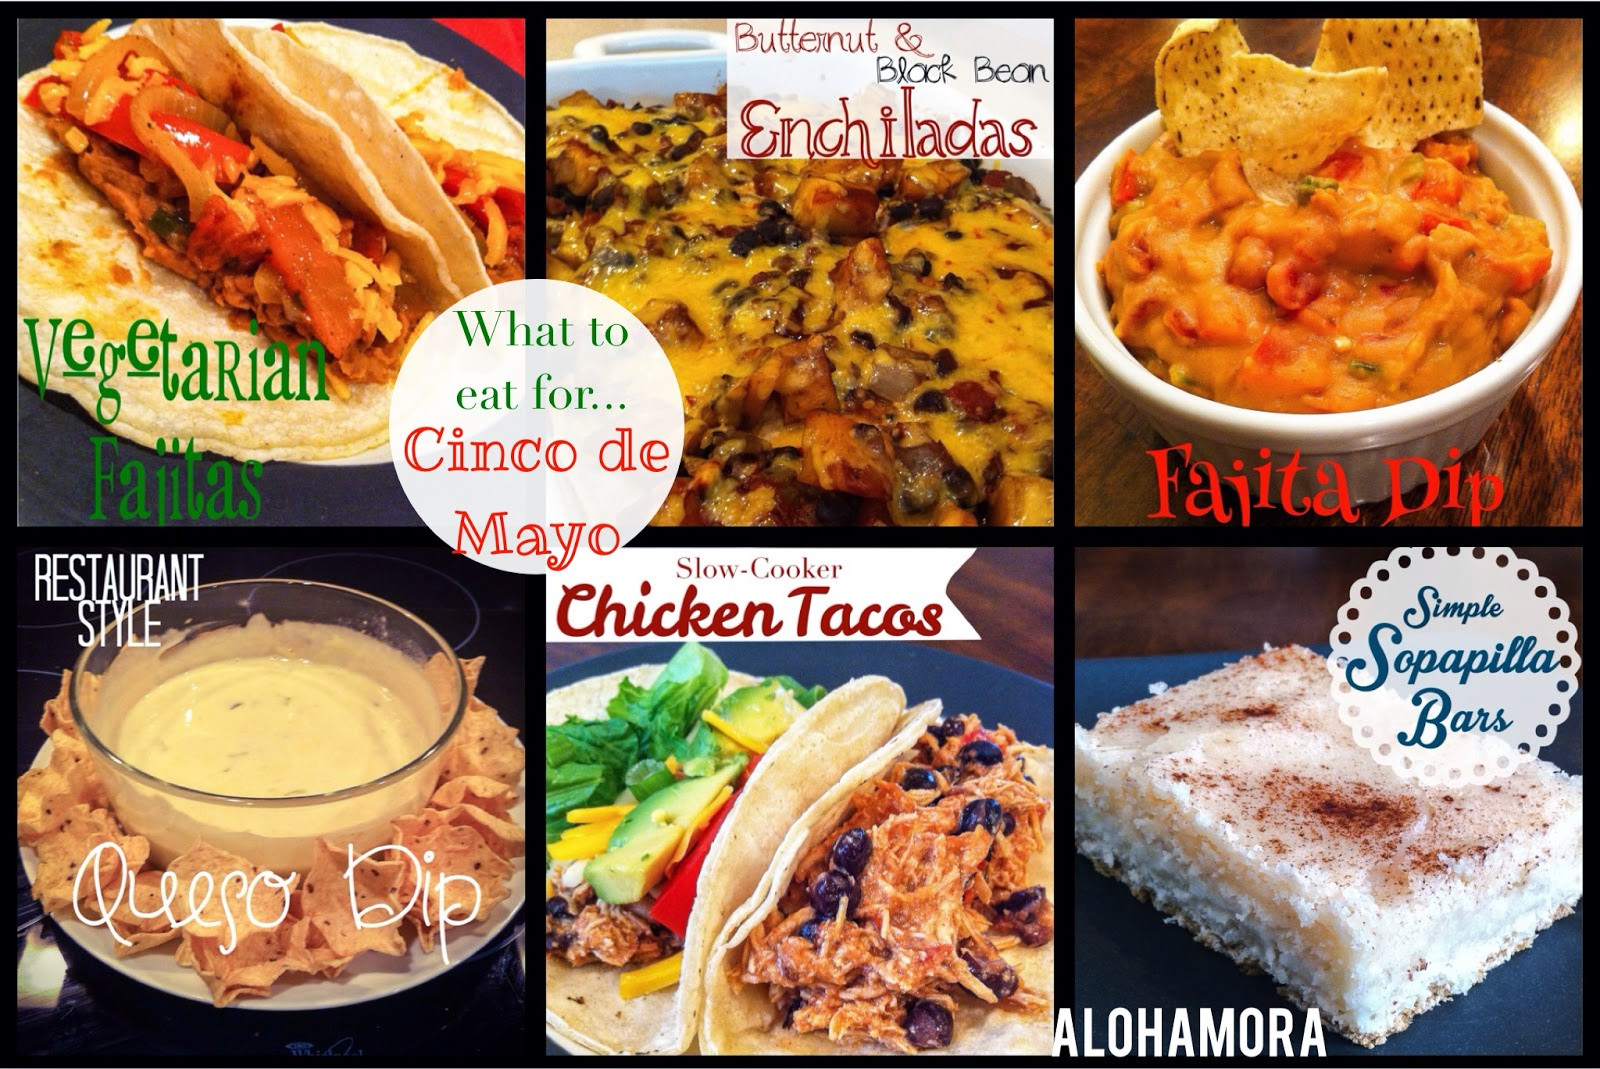 Menu Planning for Cinco de Mayo.  A list of amazing Mexican or Tex-Mex food to enjoy.  A mix of appetizers, dinner, and desserts.  Gluten Free, Vegetarian, and healthy are all options.  Alohamora Open a Book http://alohamoraopenabook.blogspot.com/